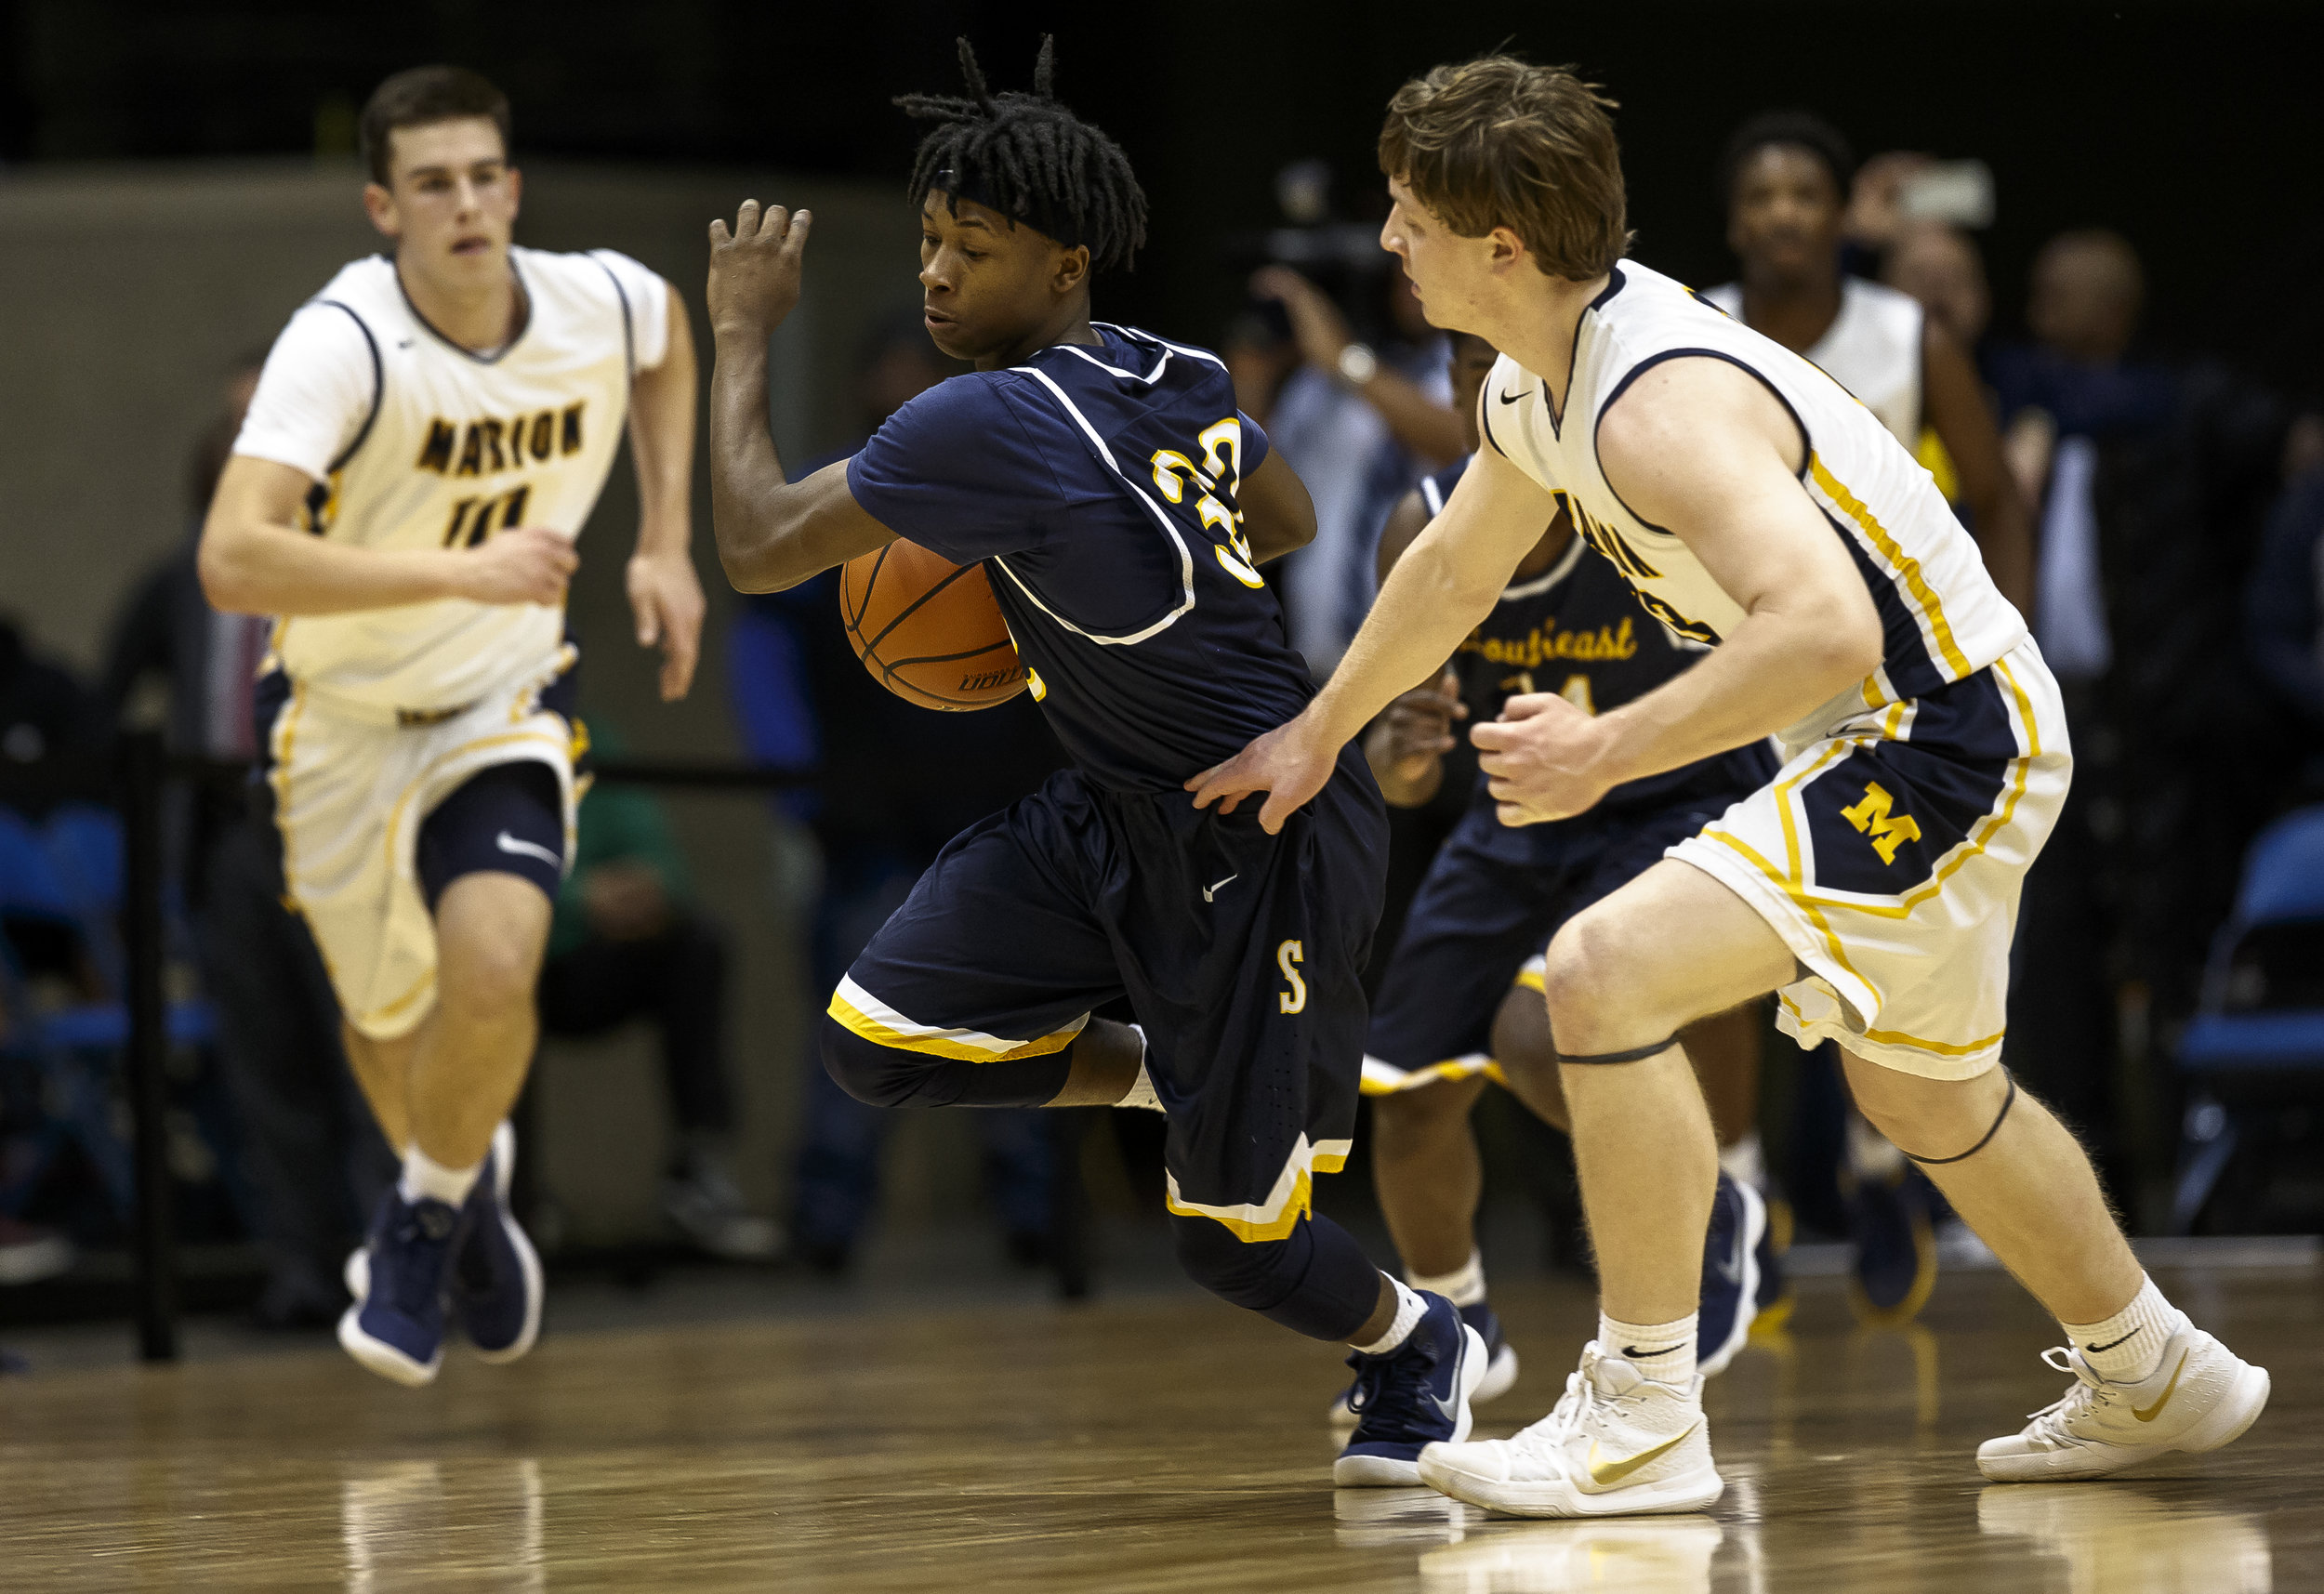 Southeast's Stepheon Sims (32) drives the ball past Marion's Justin Saddoris (13) in the first half during the Class 3A Springfield Supersectional at the Bank of Springfield Center, Tuesday, March 13, 2018, in Springfield, Ill. [Justin L. Fowler/The State Journal-Register]